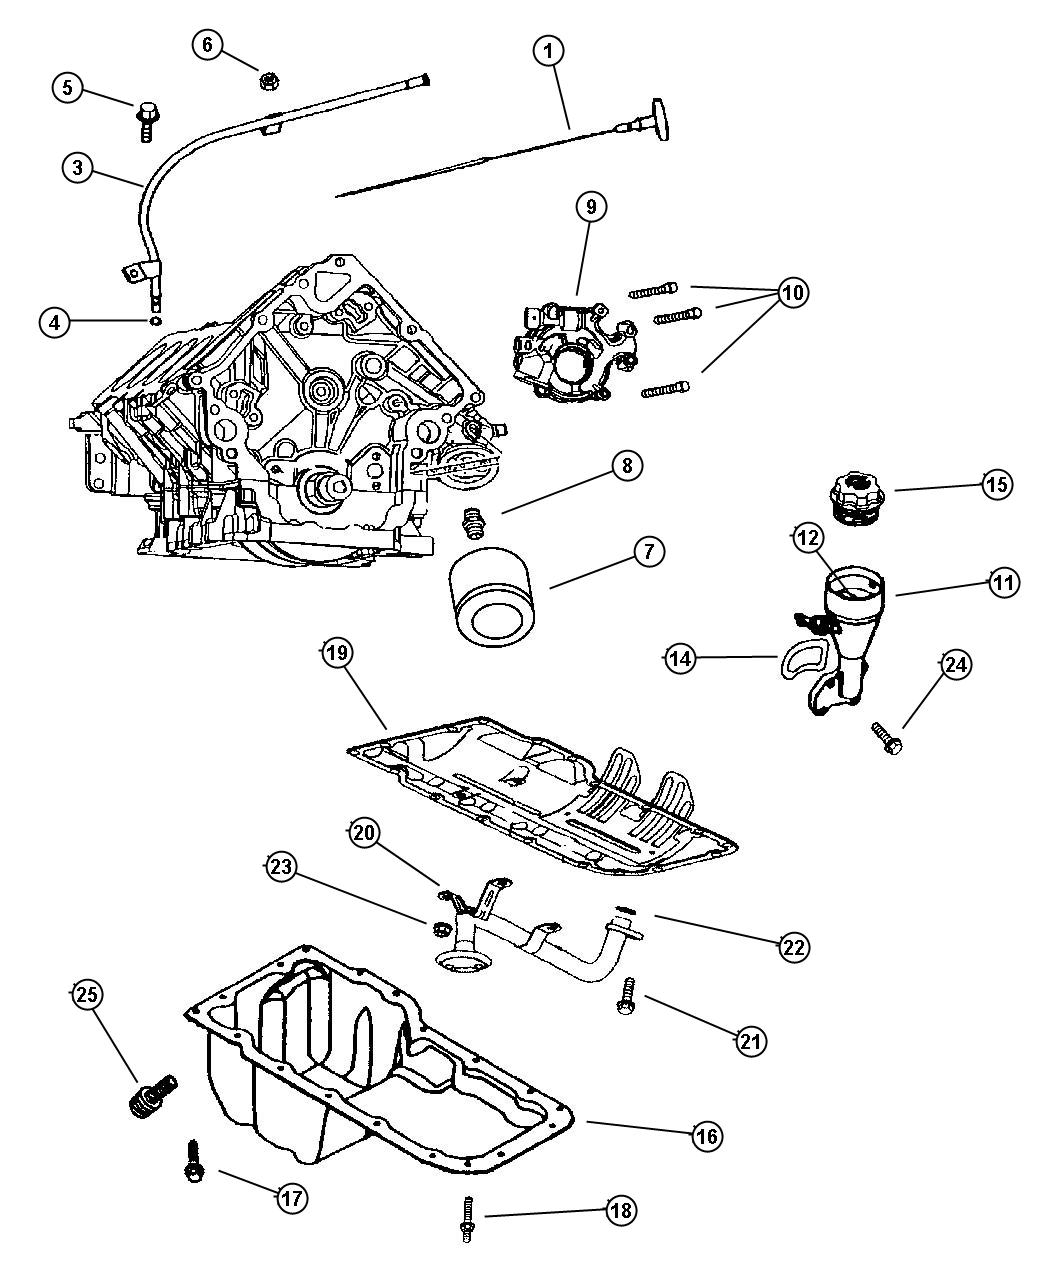 2004 Dodge Durango Serpentine Belt Diagram 5 7 Electrical Wiring Engine Free Image 1500